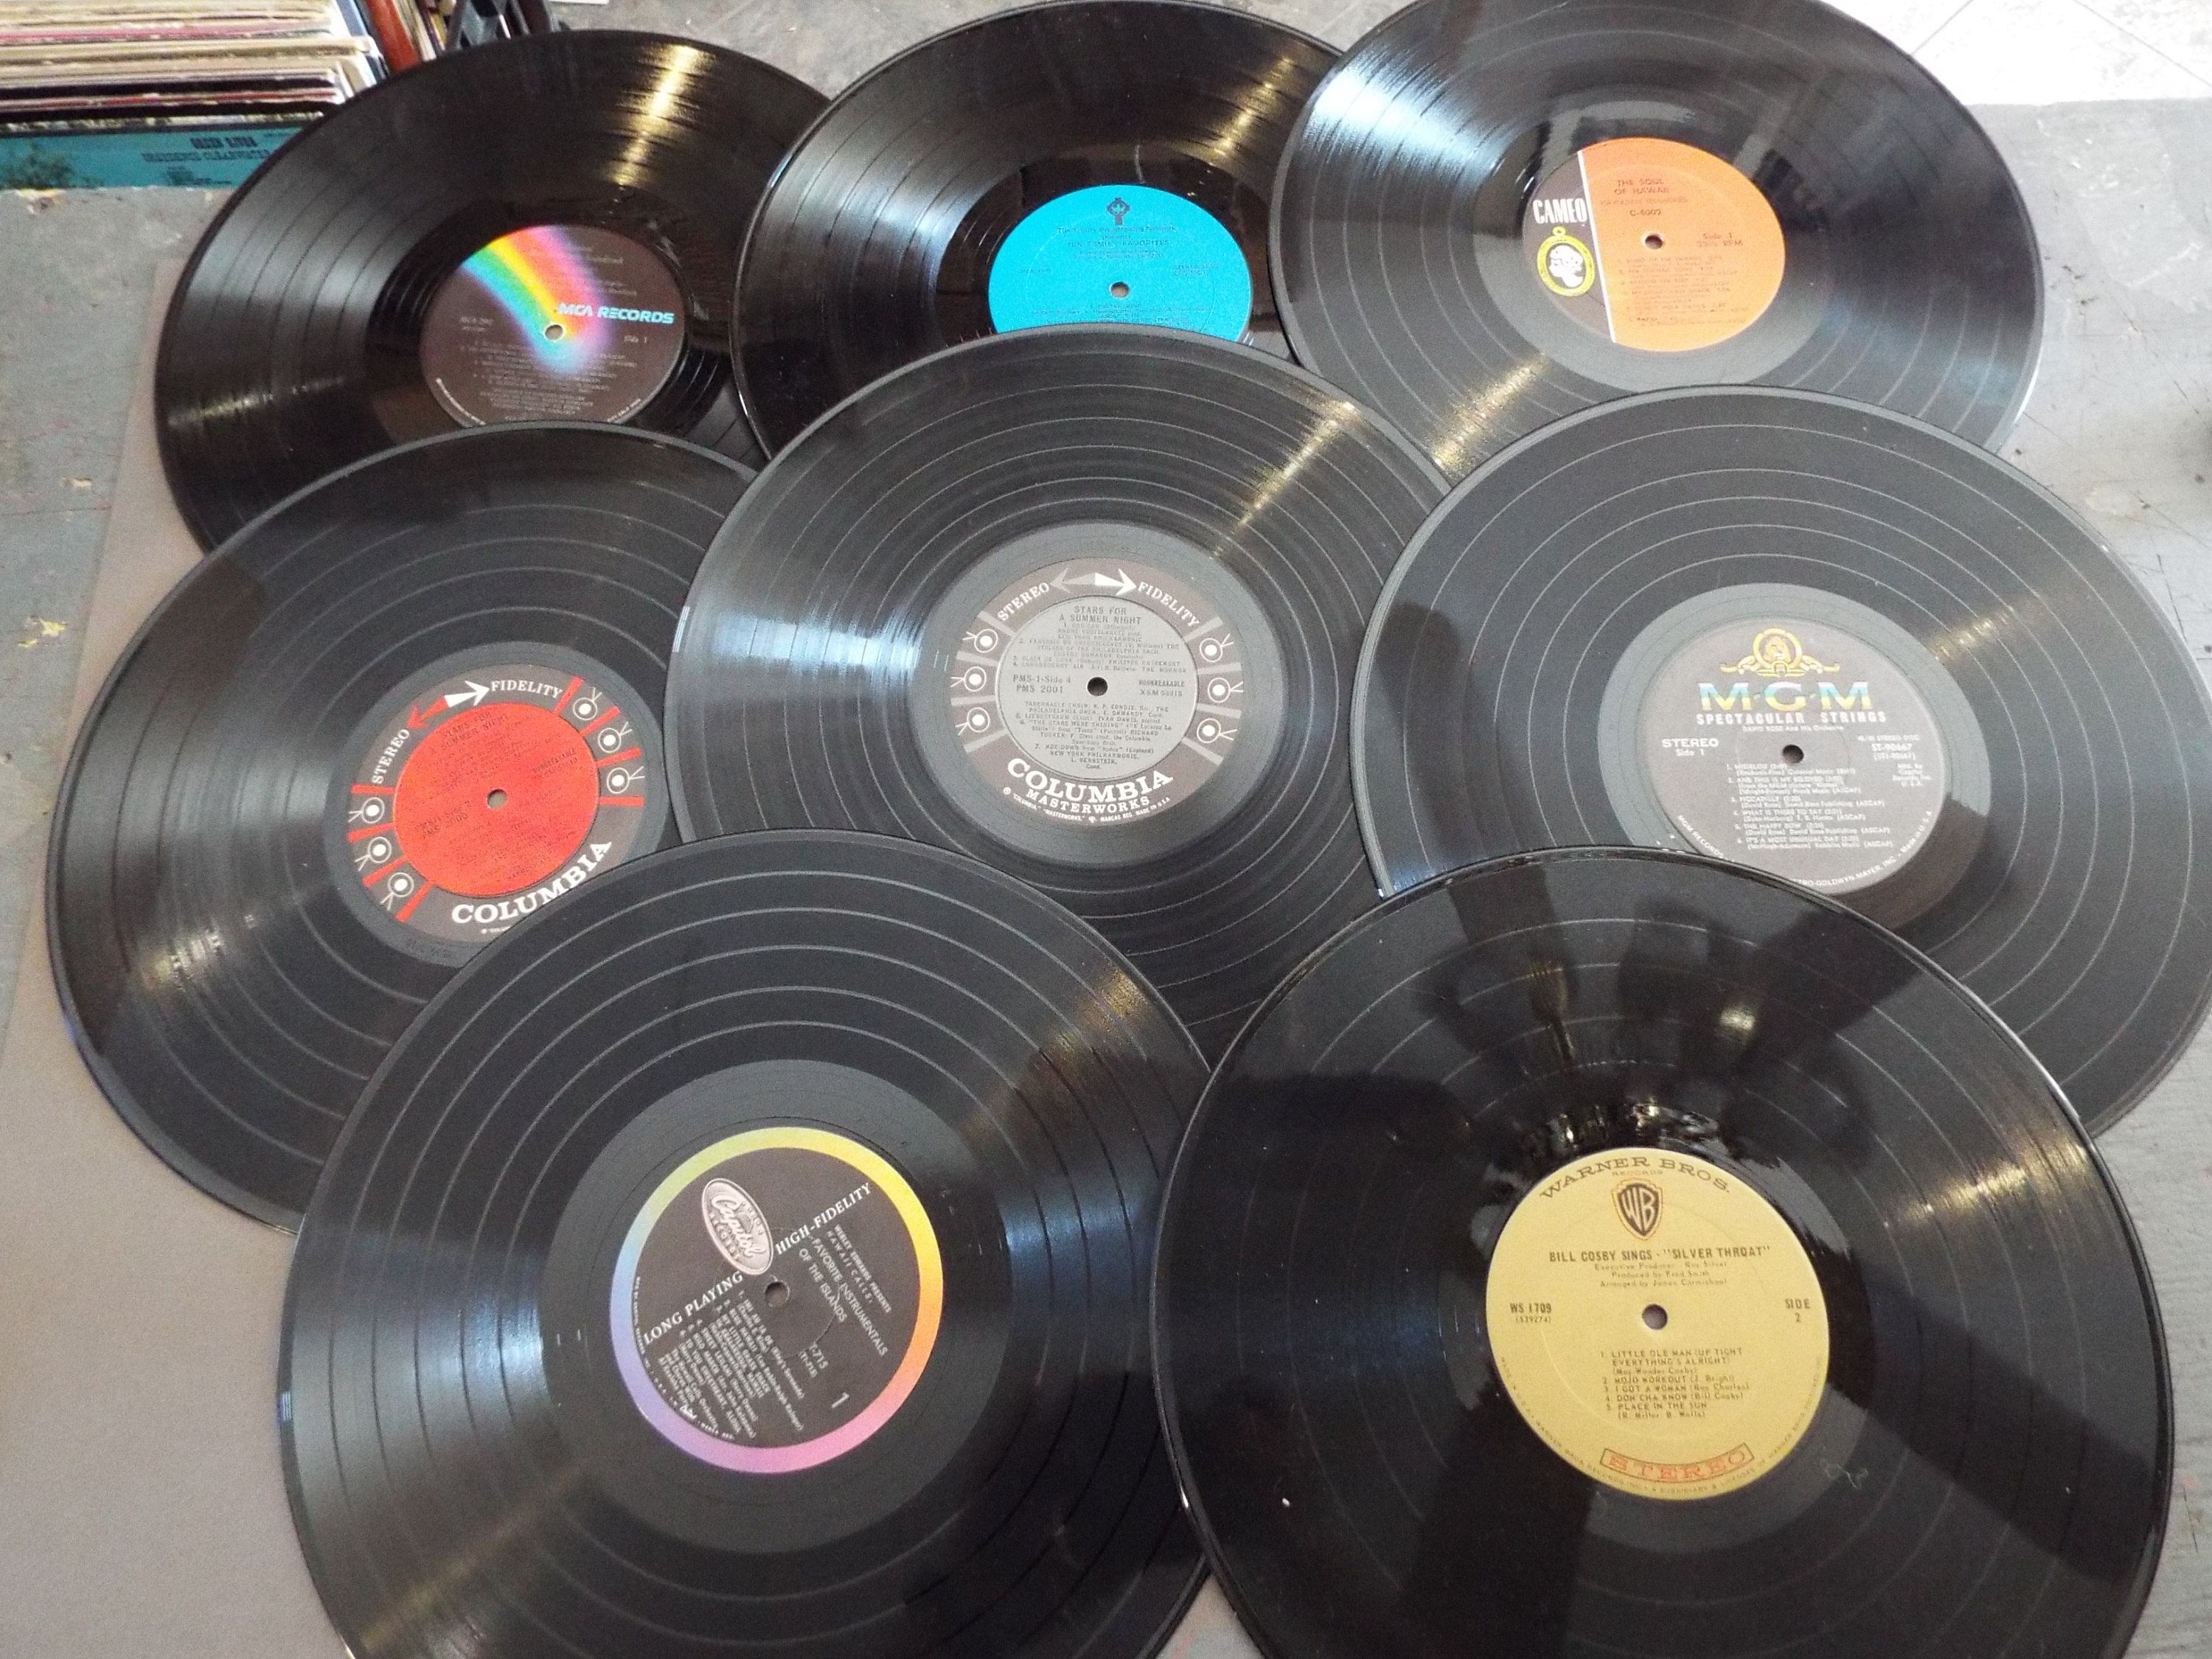 Lot Of 10 12 Vinyl Lp Records For Crafts Decorations Diy Vinyl Lp Records Records